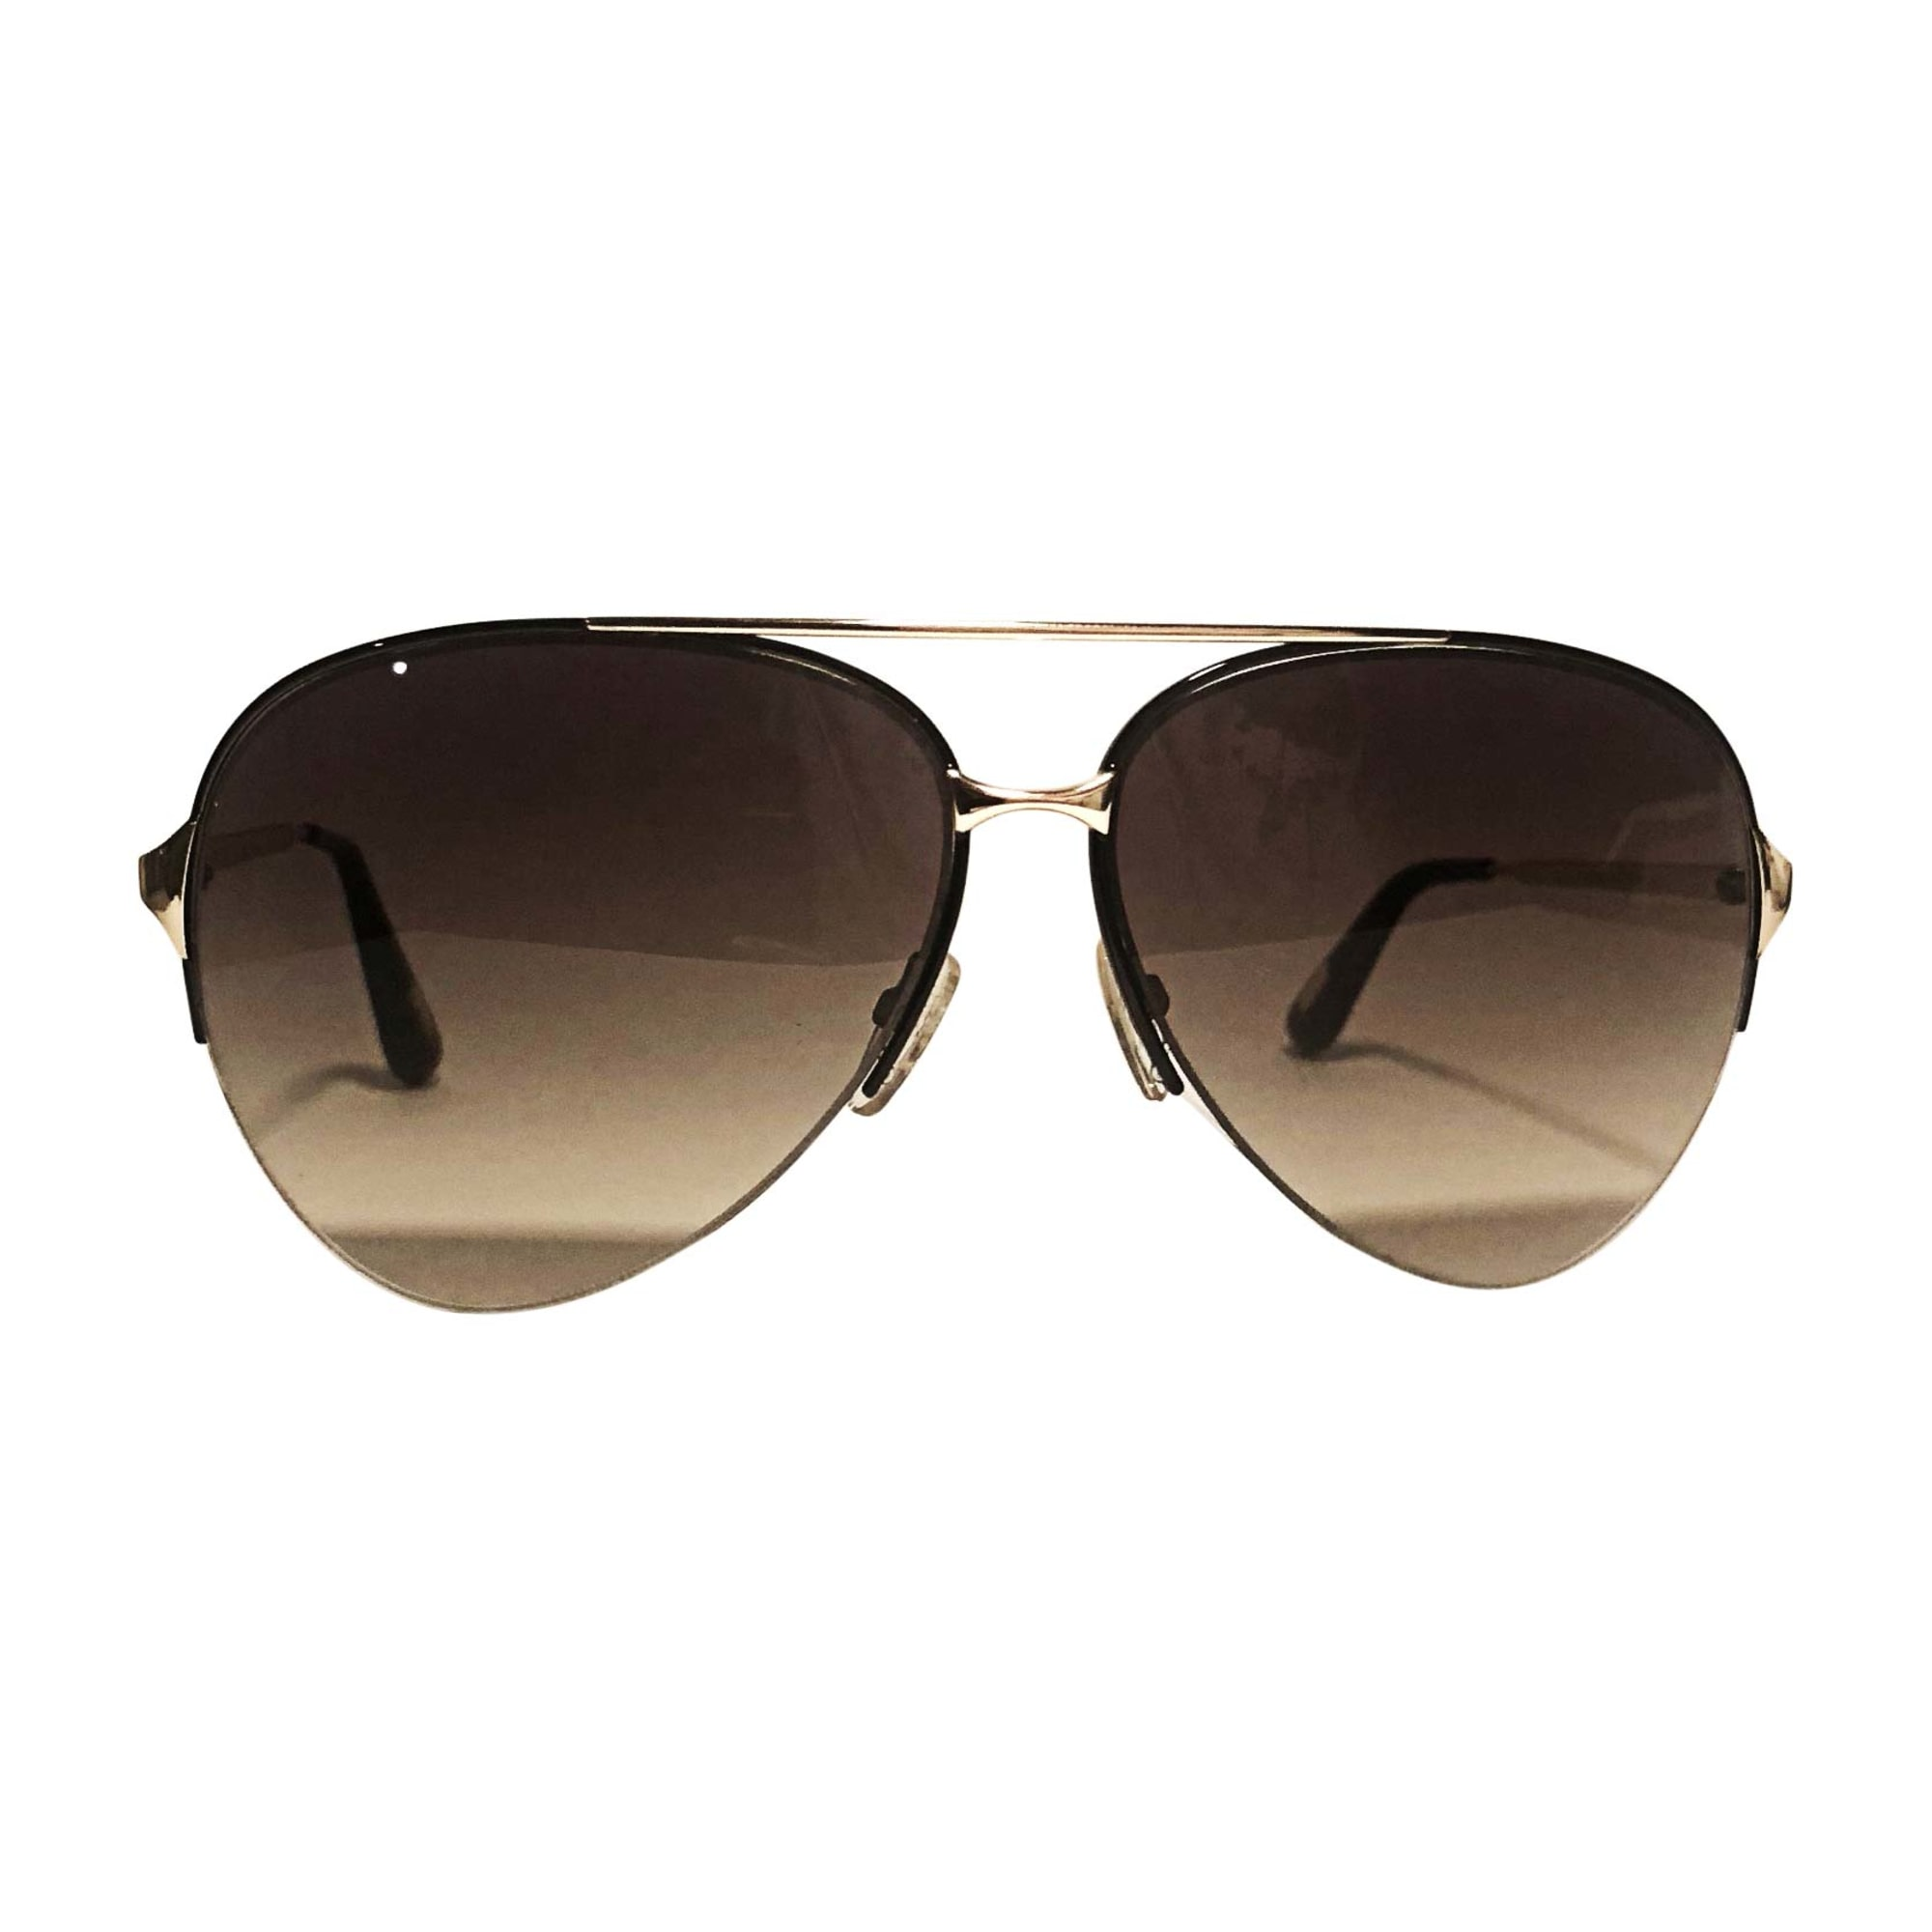 Sonnenbrille MARC JACOBS gold - 7816718